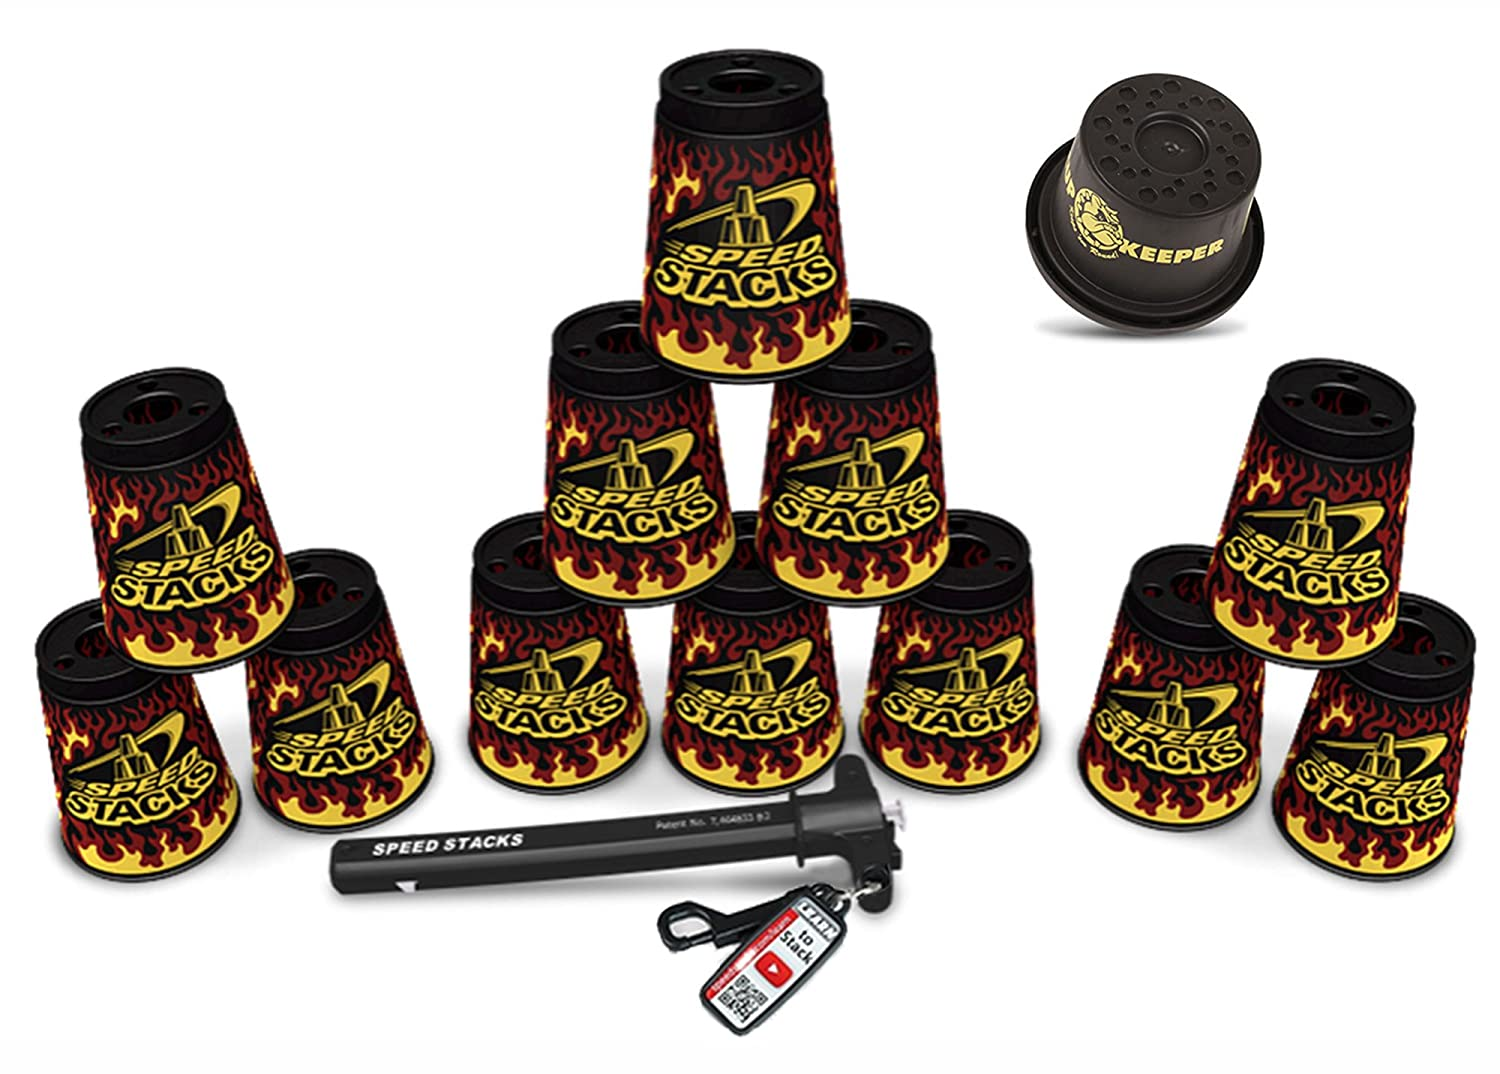 Speed Stacks Custom Combo Set: 12 Limited Edition BLACK FLAME Cups, Cup Keeper, Quick Release Stem new mf8 eitan s star icosaix radiolarian puzzle magic cube black and primary limited edition very challenging welcome to buy